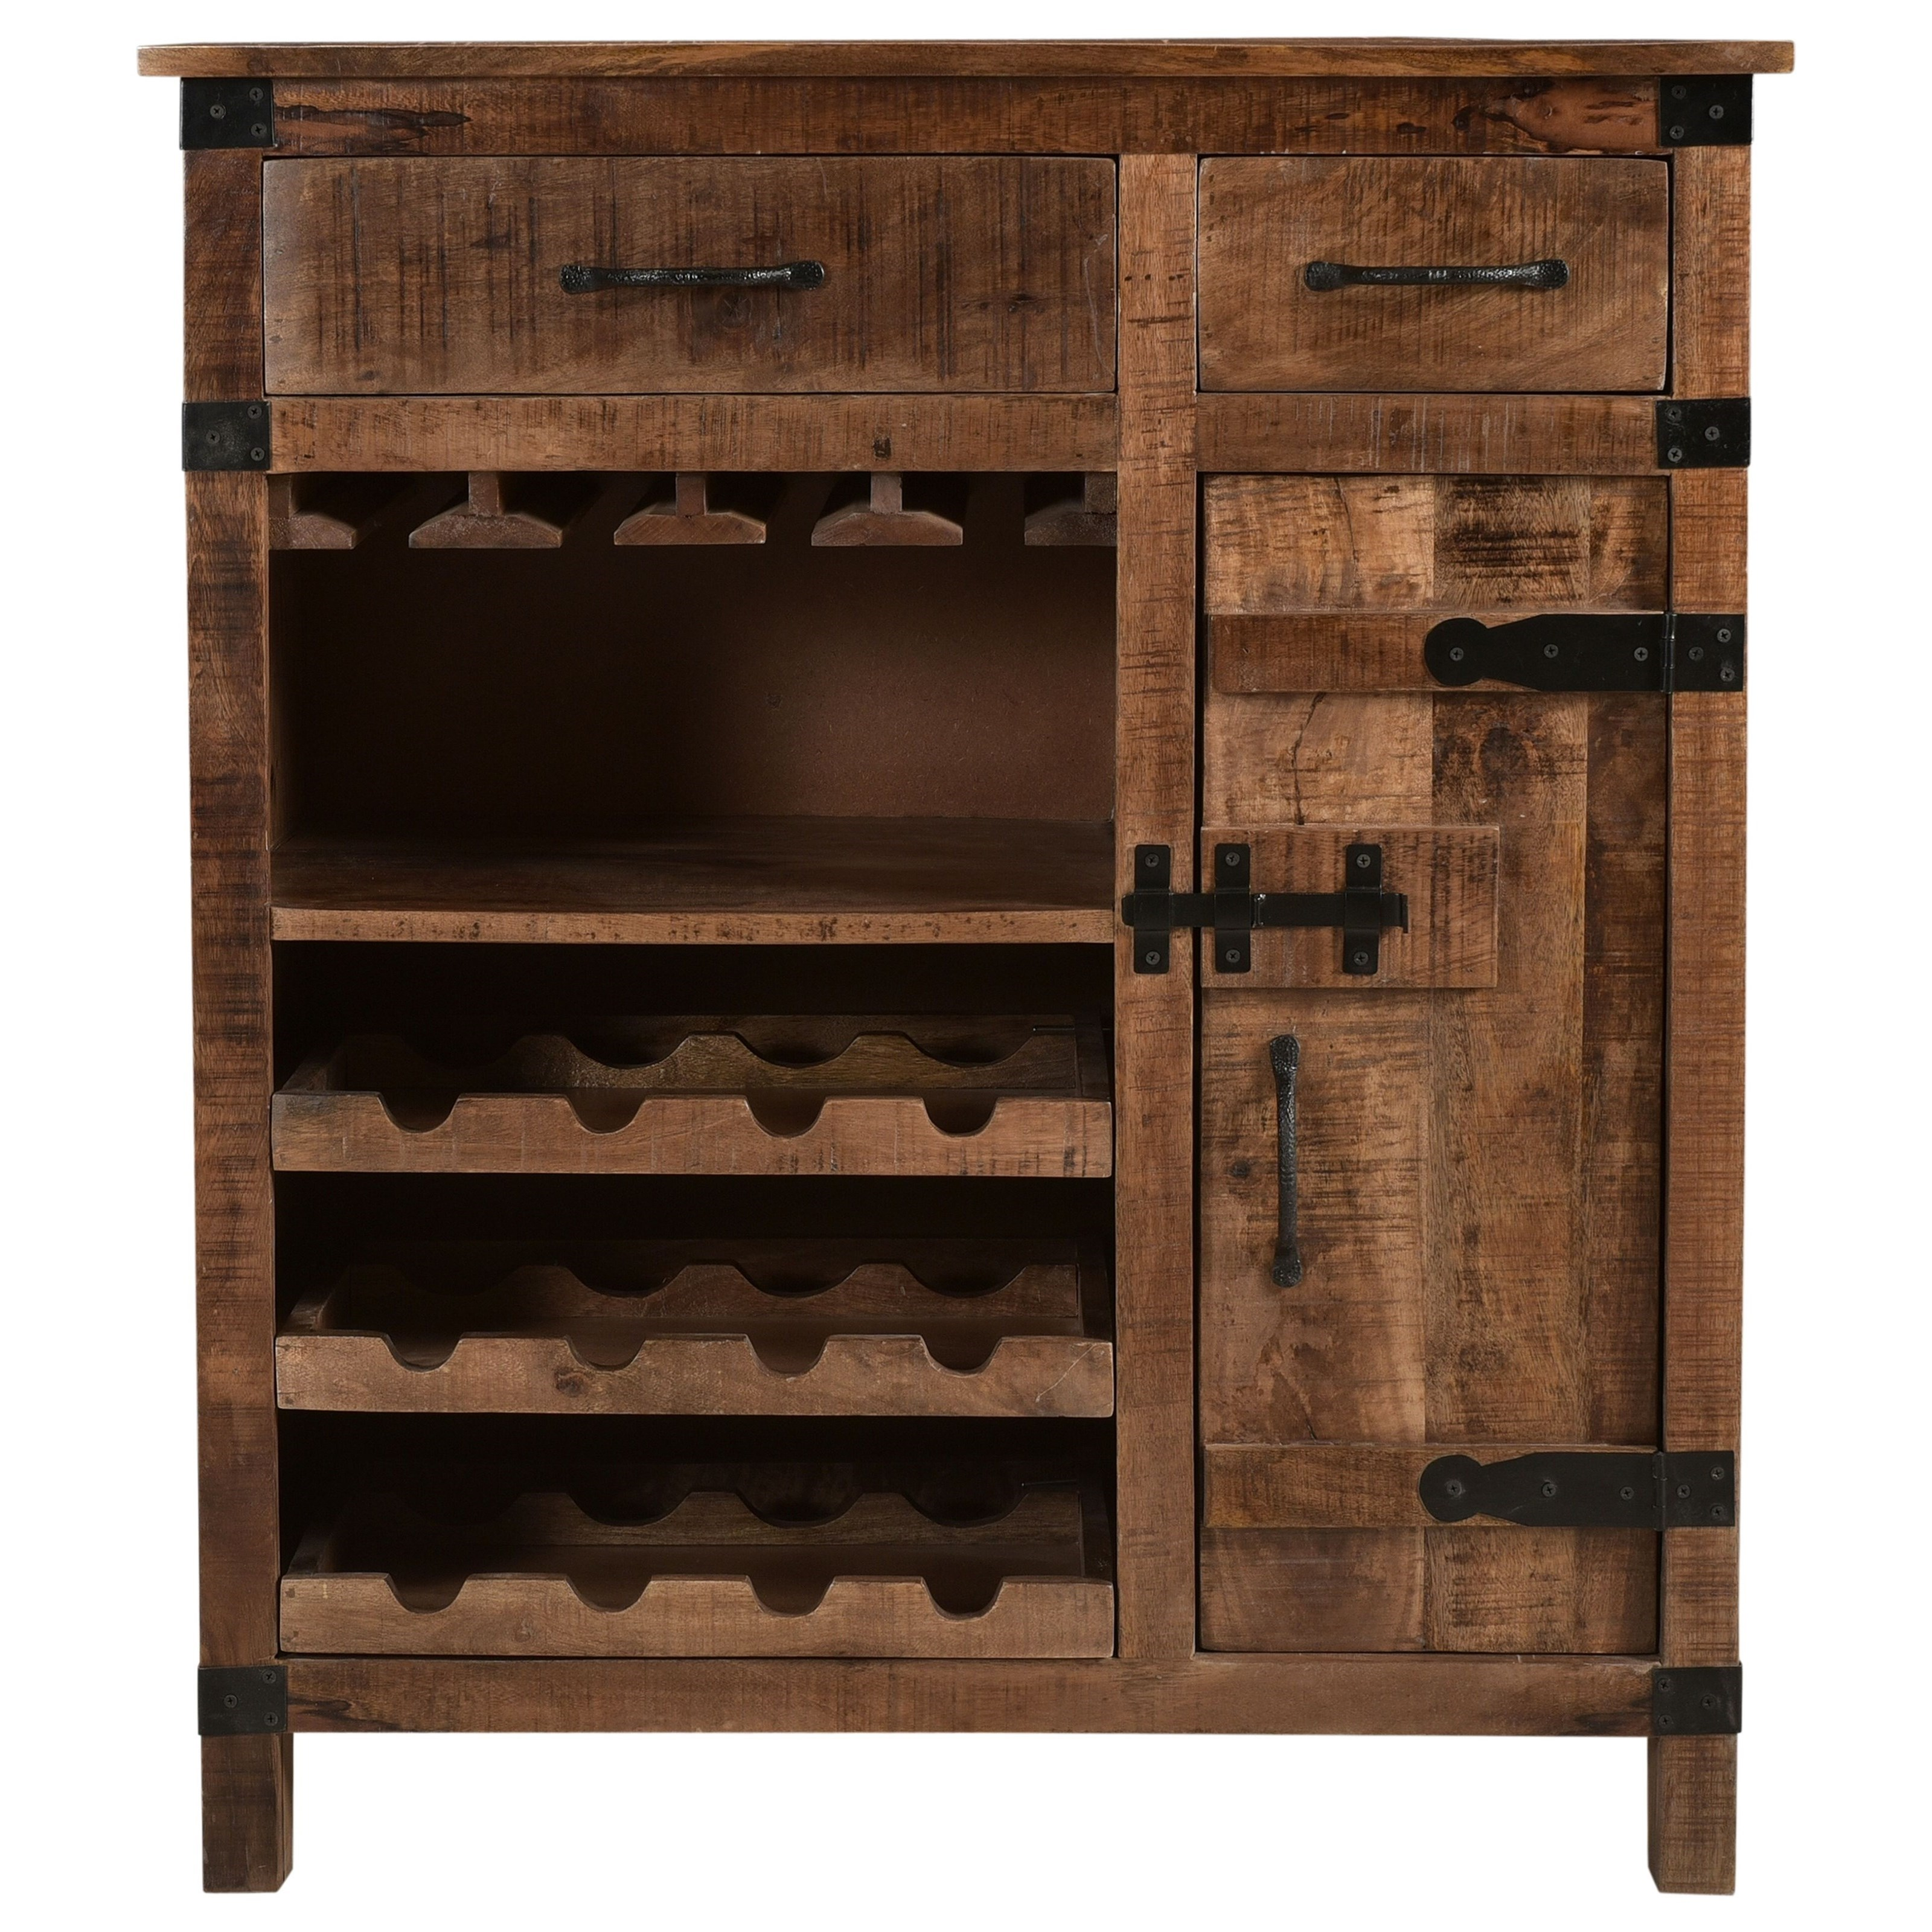 C2C Accents One Door Two Drawer Wine Cabinet by C2C at Walker's Furniture